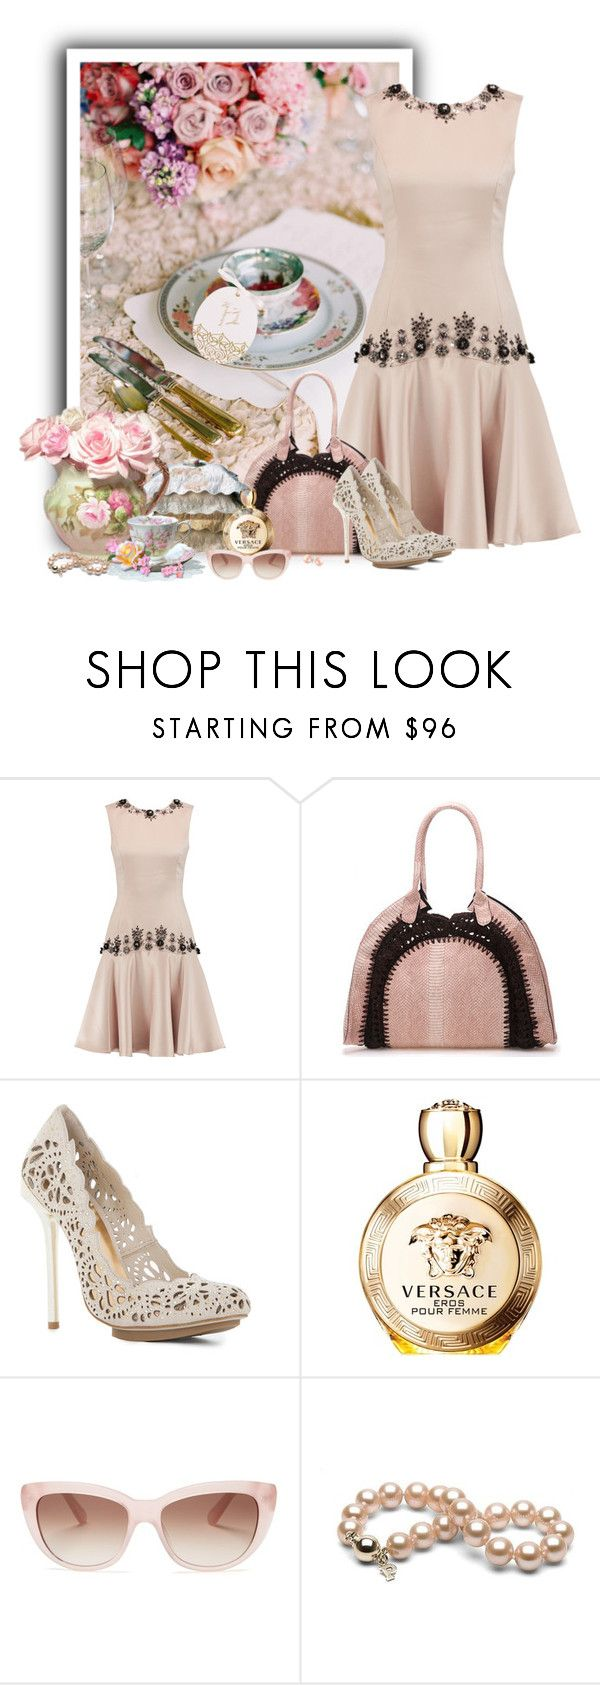 """""""Vestido de verão"""" by sil-engler ❤ liked on Polyvore featuring Mikael Aghal, BCBGMAXAZRIA, Versace, Kate Spade and Bling Jewelry"""